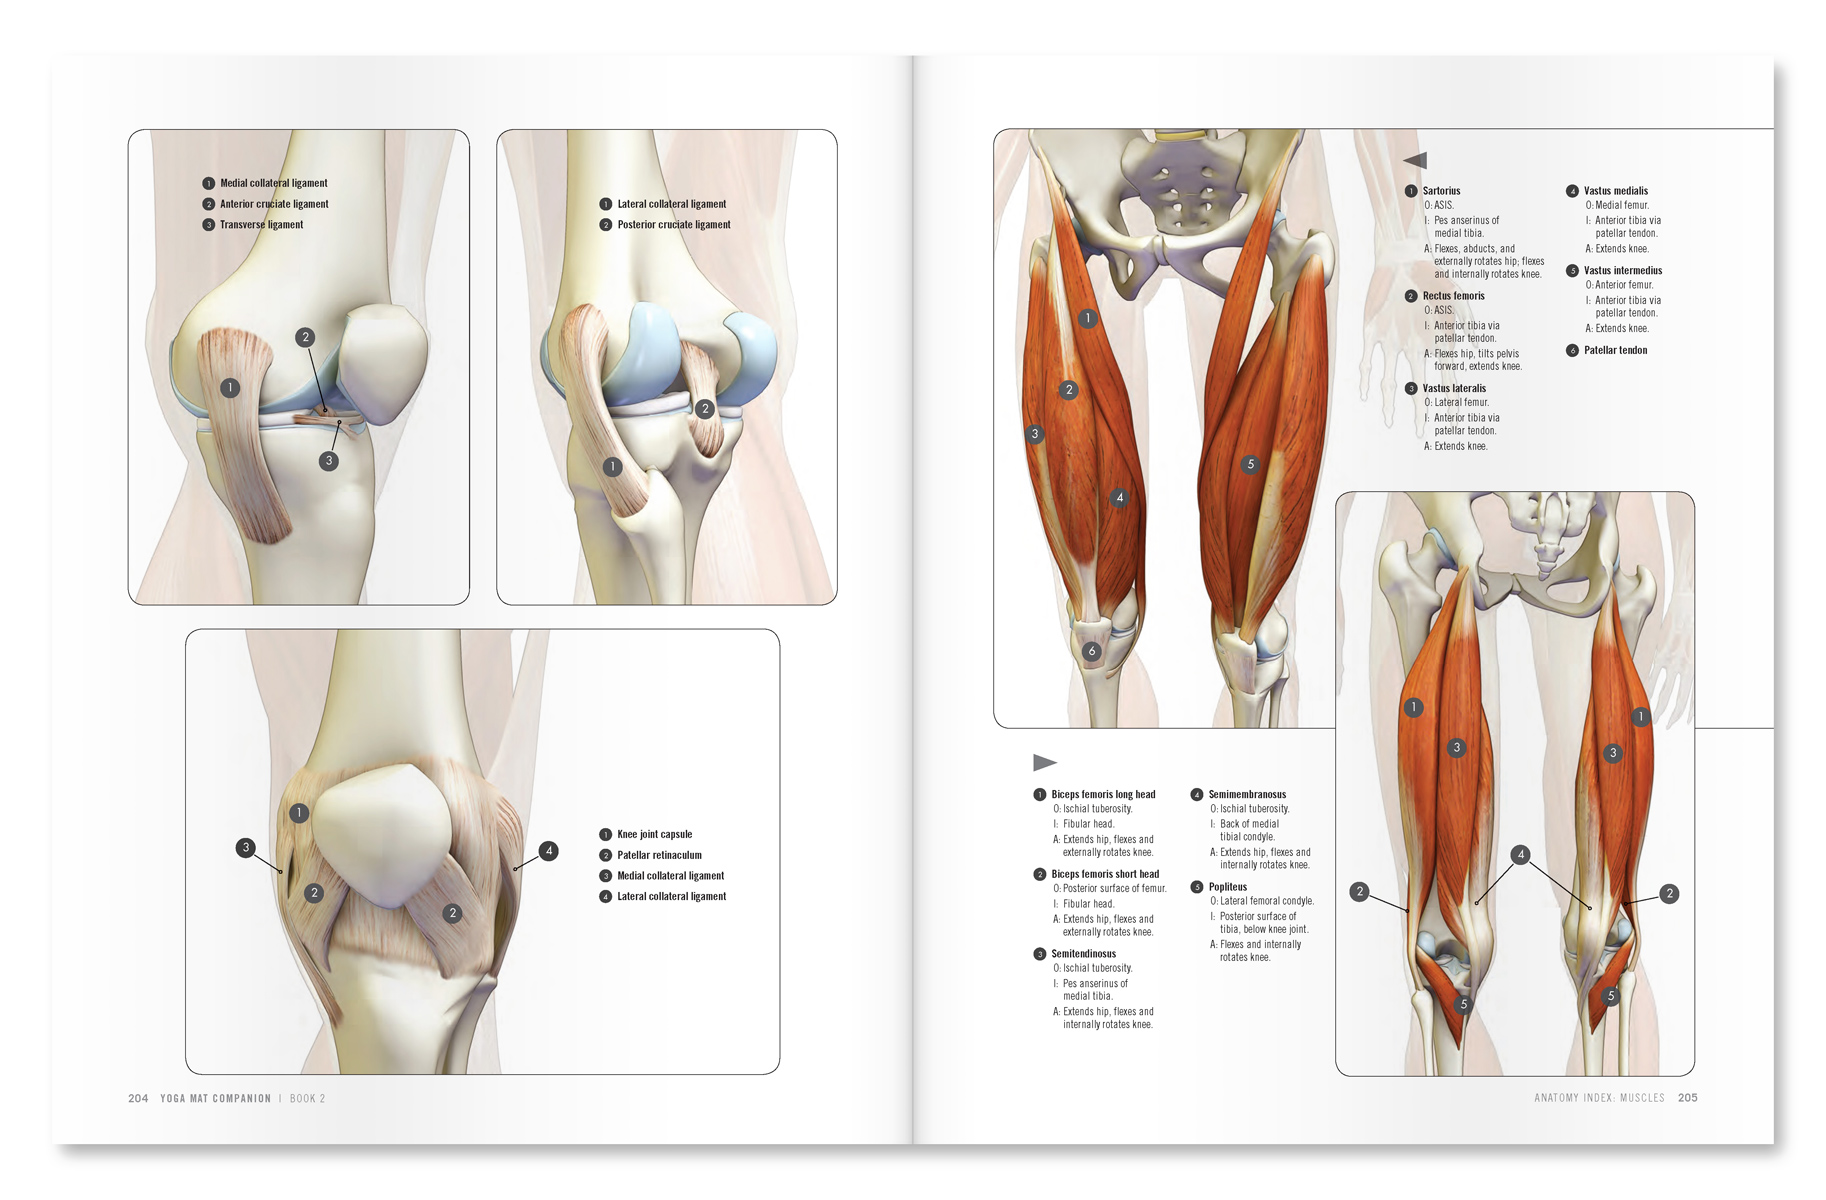 The Daily Bandha: Strong Thigh Muscles Benefit People with Knee ...